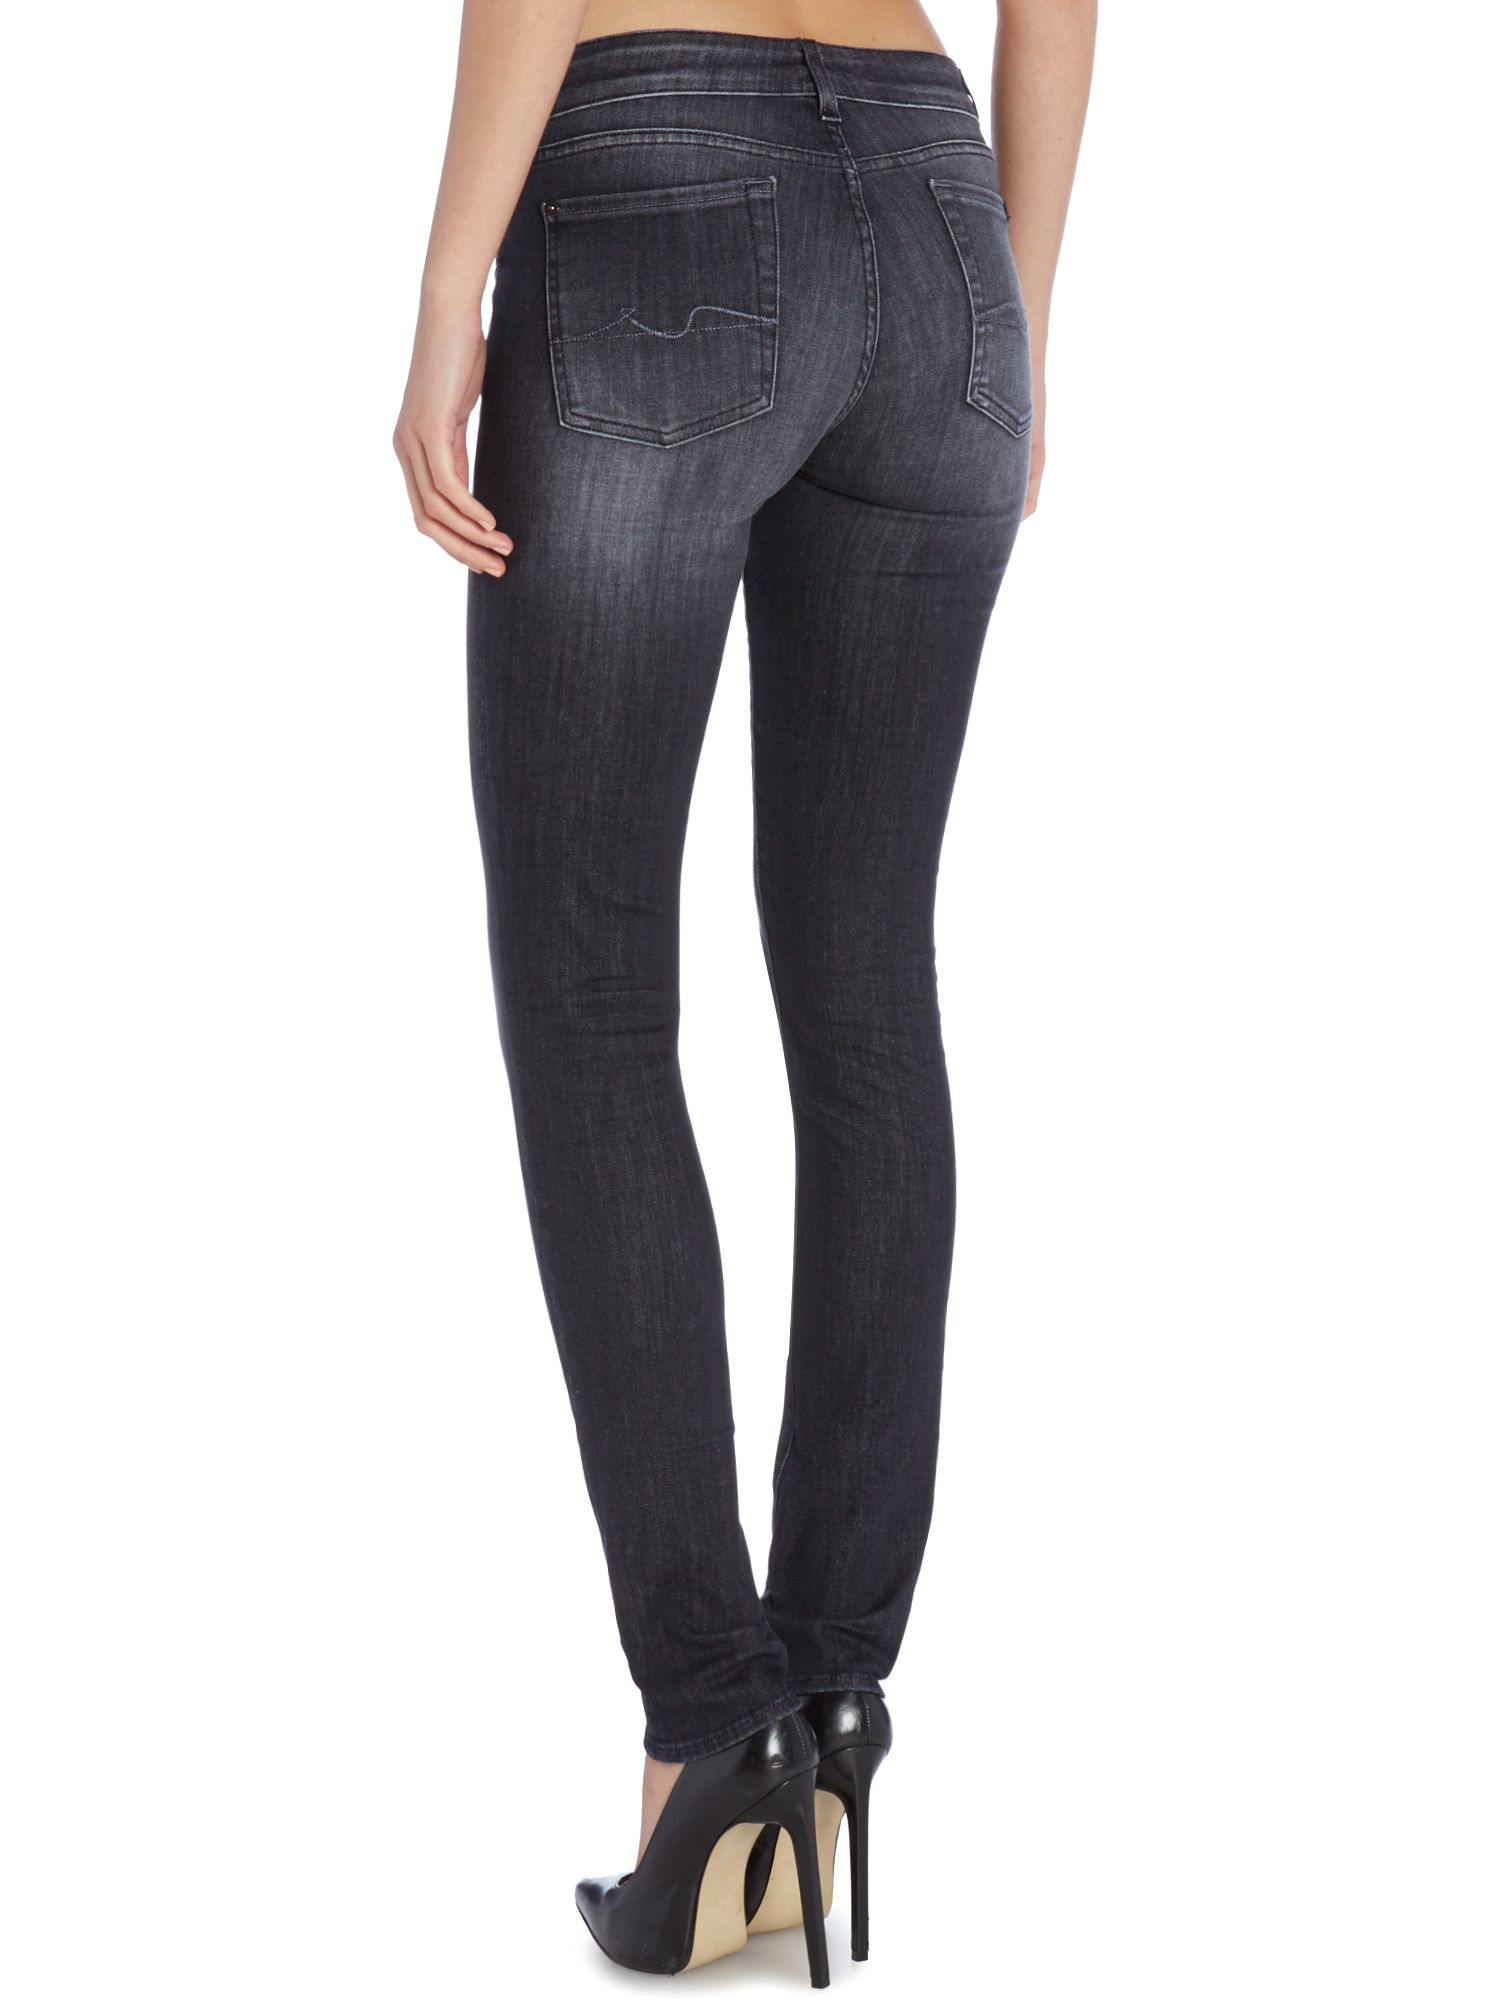 7 for all mankind Exclusive Cristen Skinny Jean In Washed Black in ...